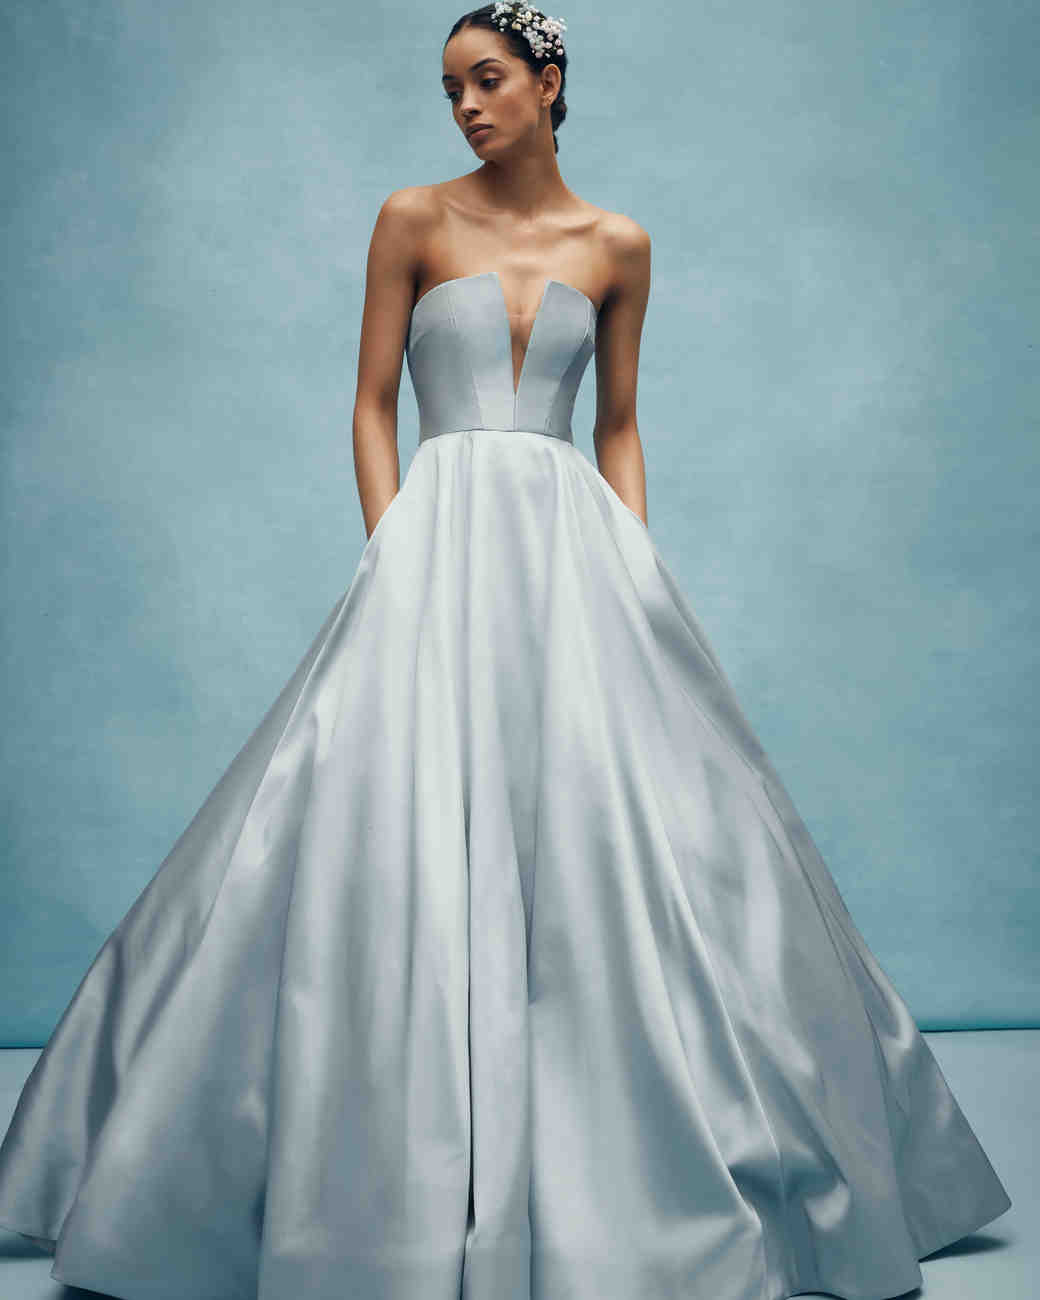 6512b815fbd1 Colorful Wedding Dresses That Make a Statement Down the Aisle ...